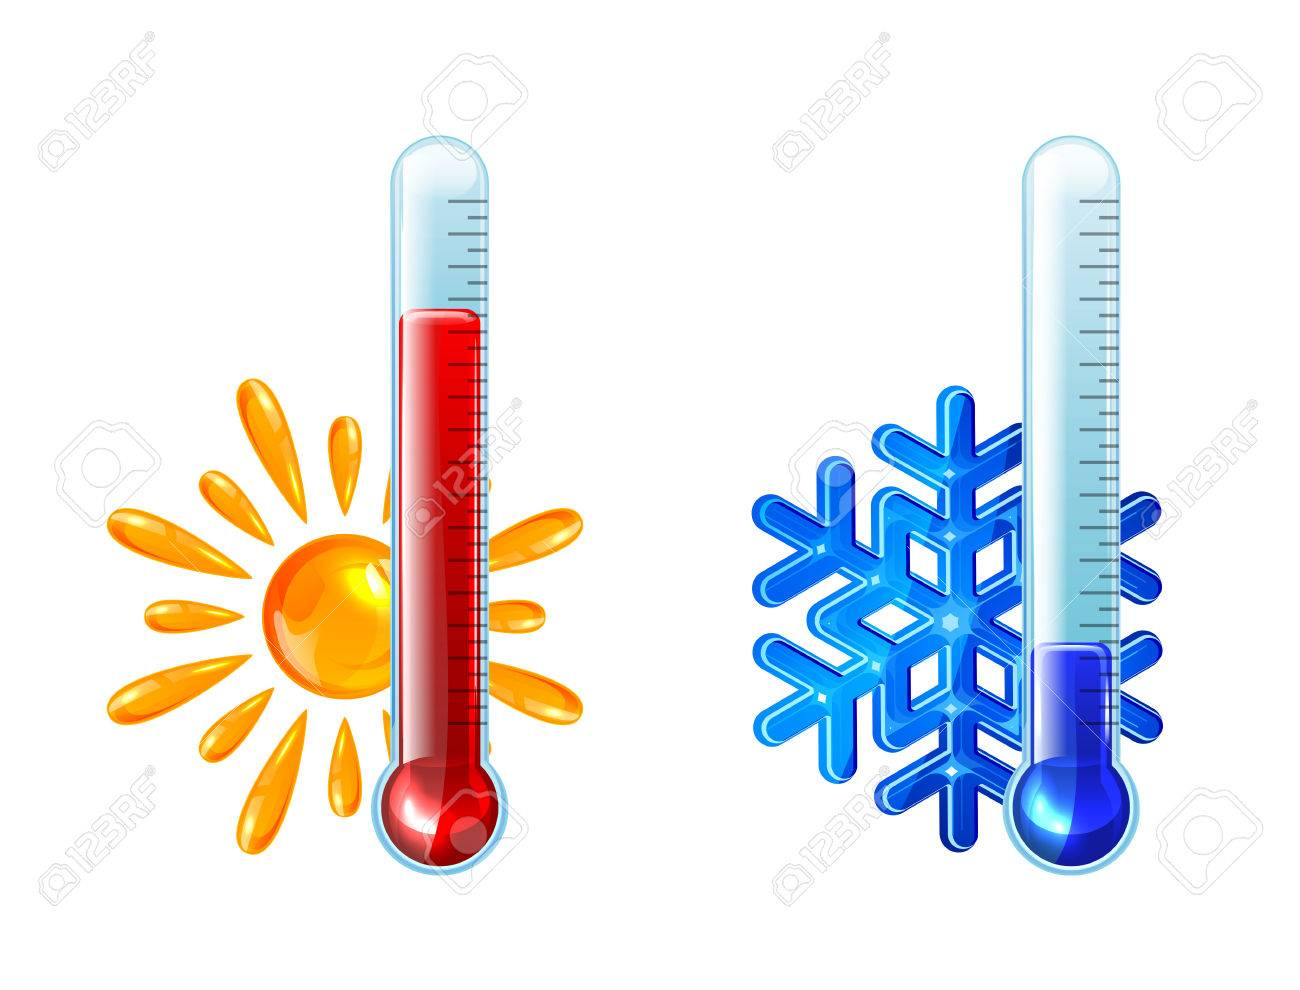 Set of thermometers with red and blue indicator isolated on white background, illustration - 30018724